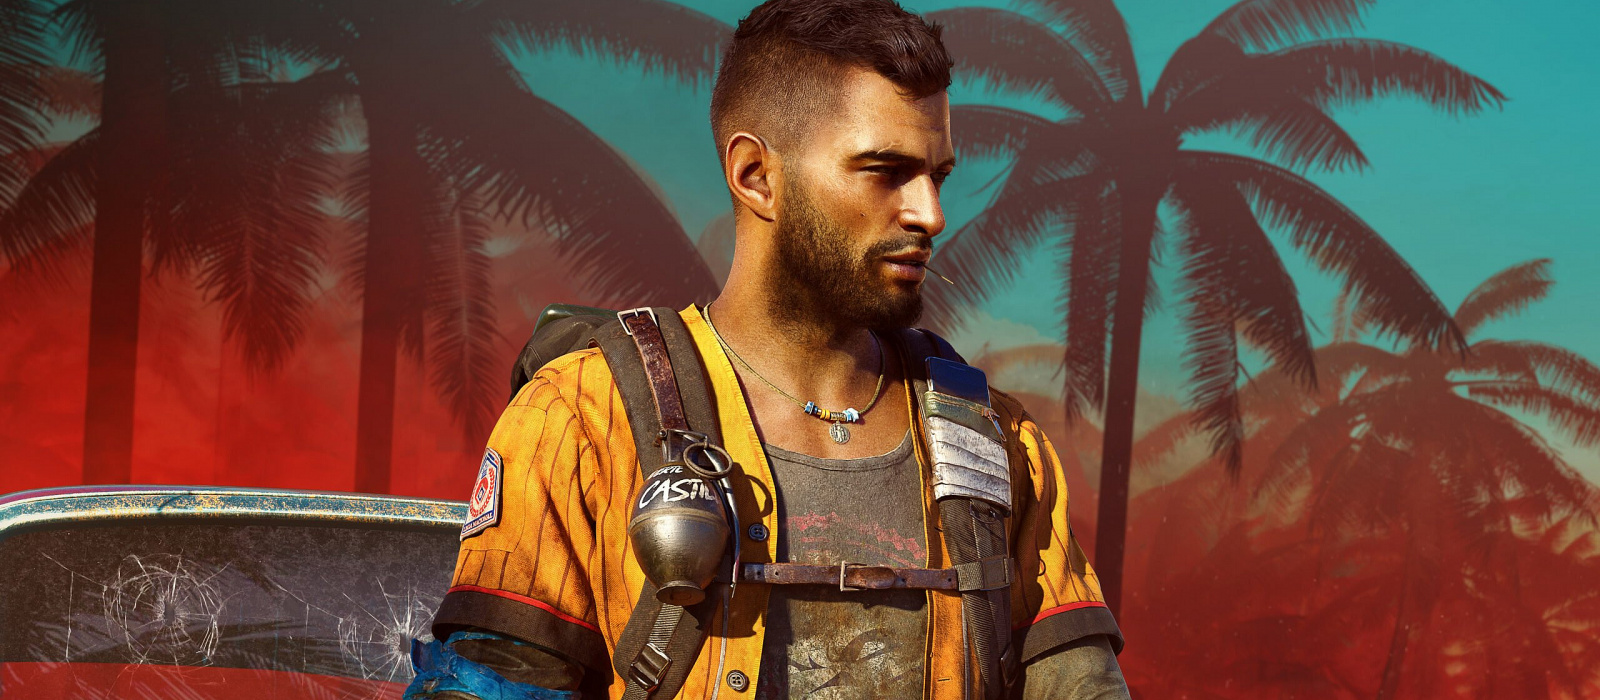 Is it worth killing McKay in Far Cry 6? What happens if he is killed or left alive